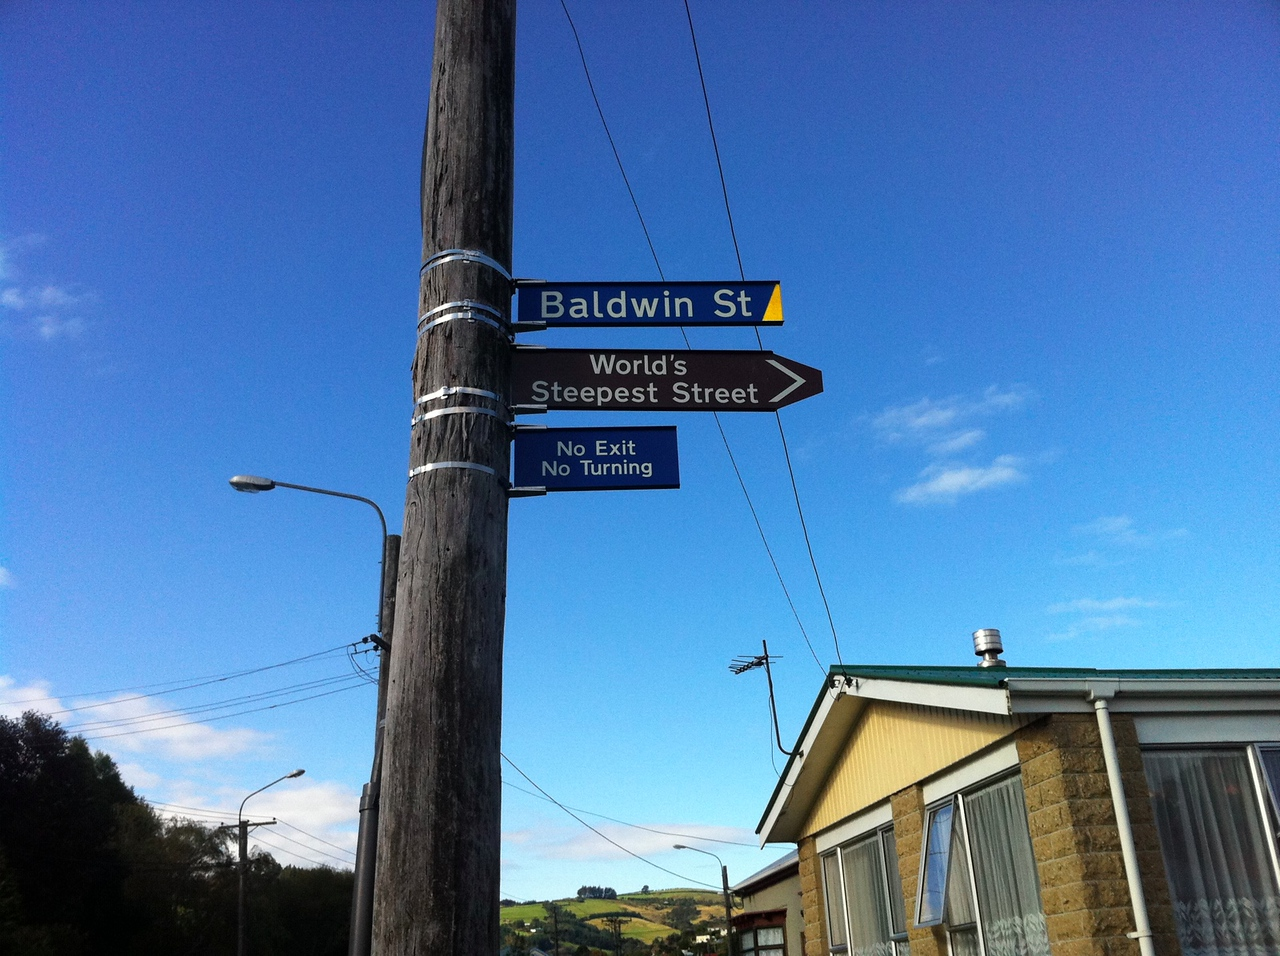 Baldwin Street, the steepest street in the world.